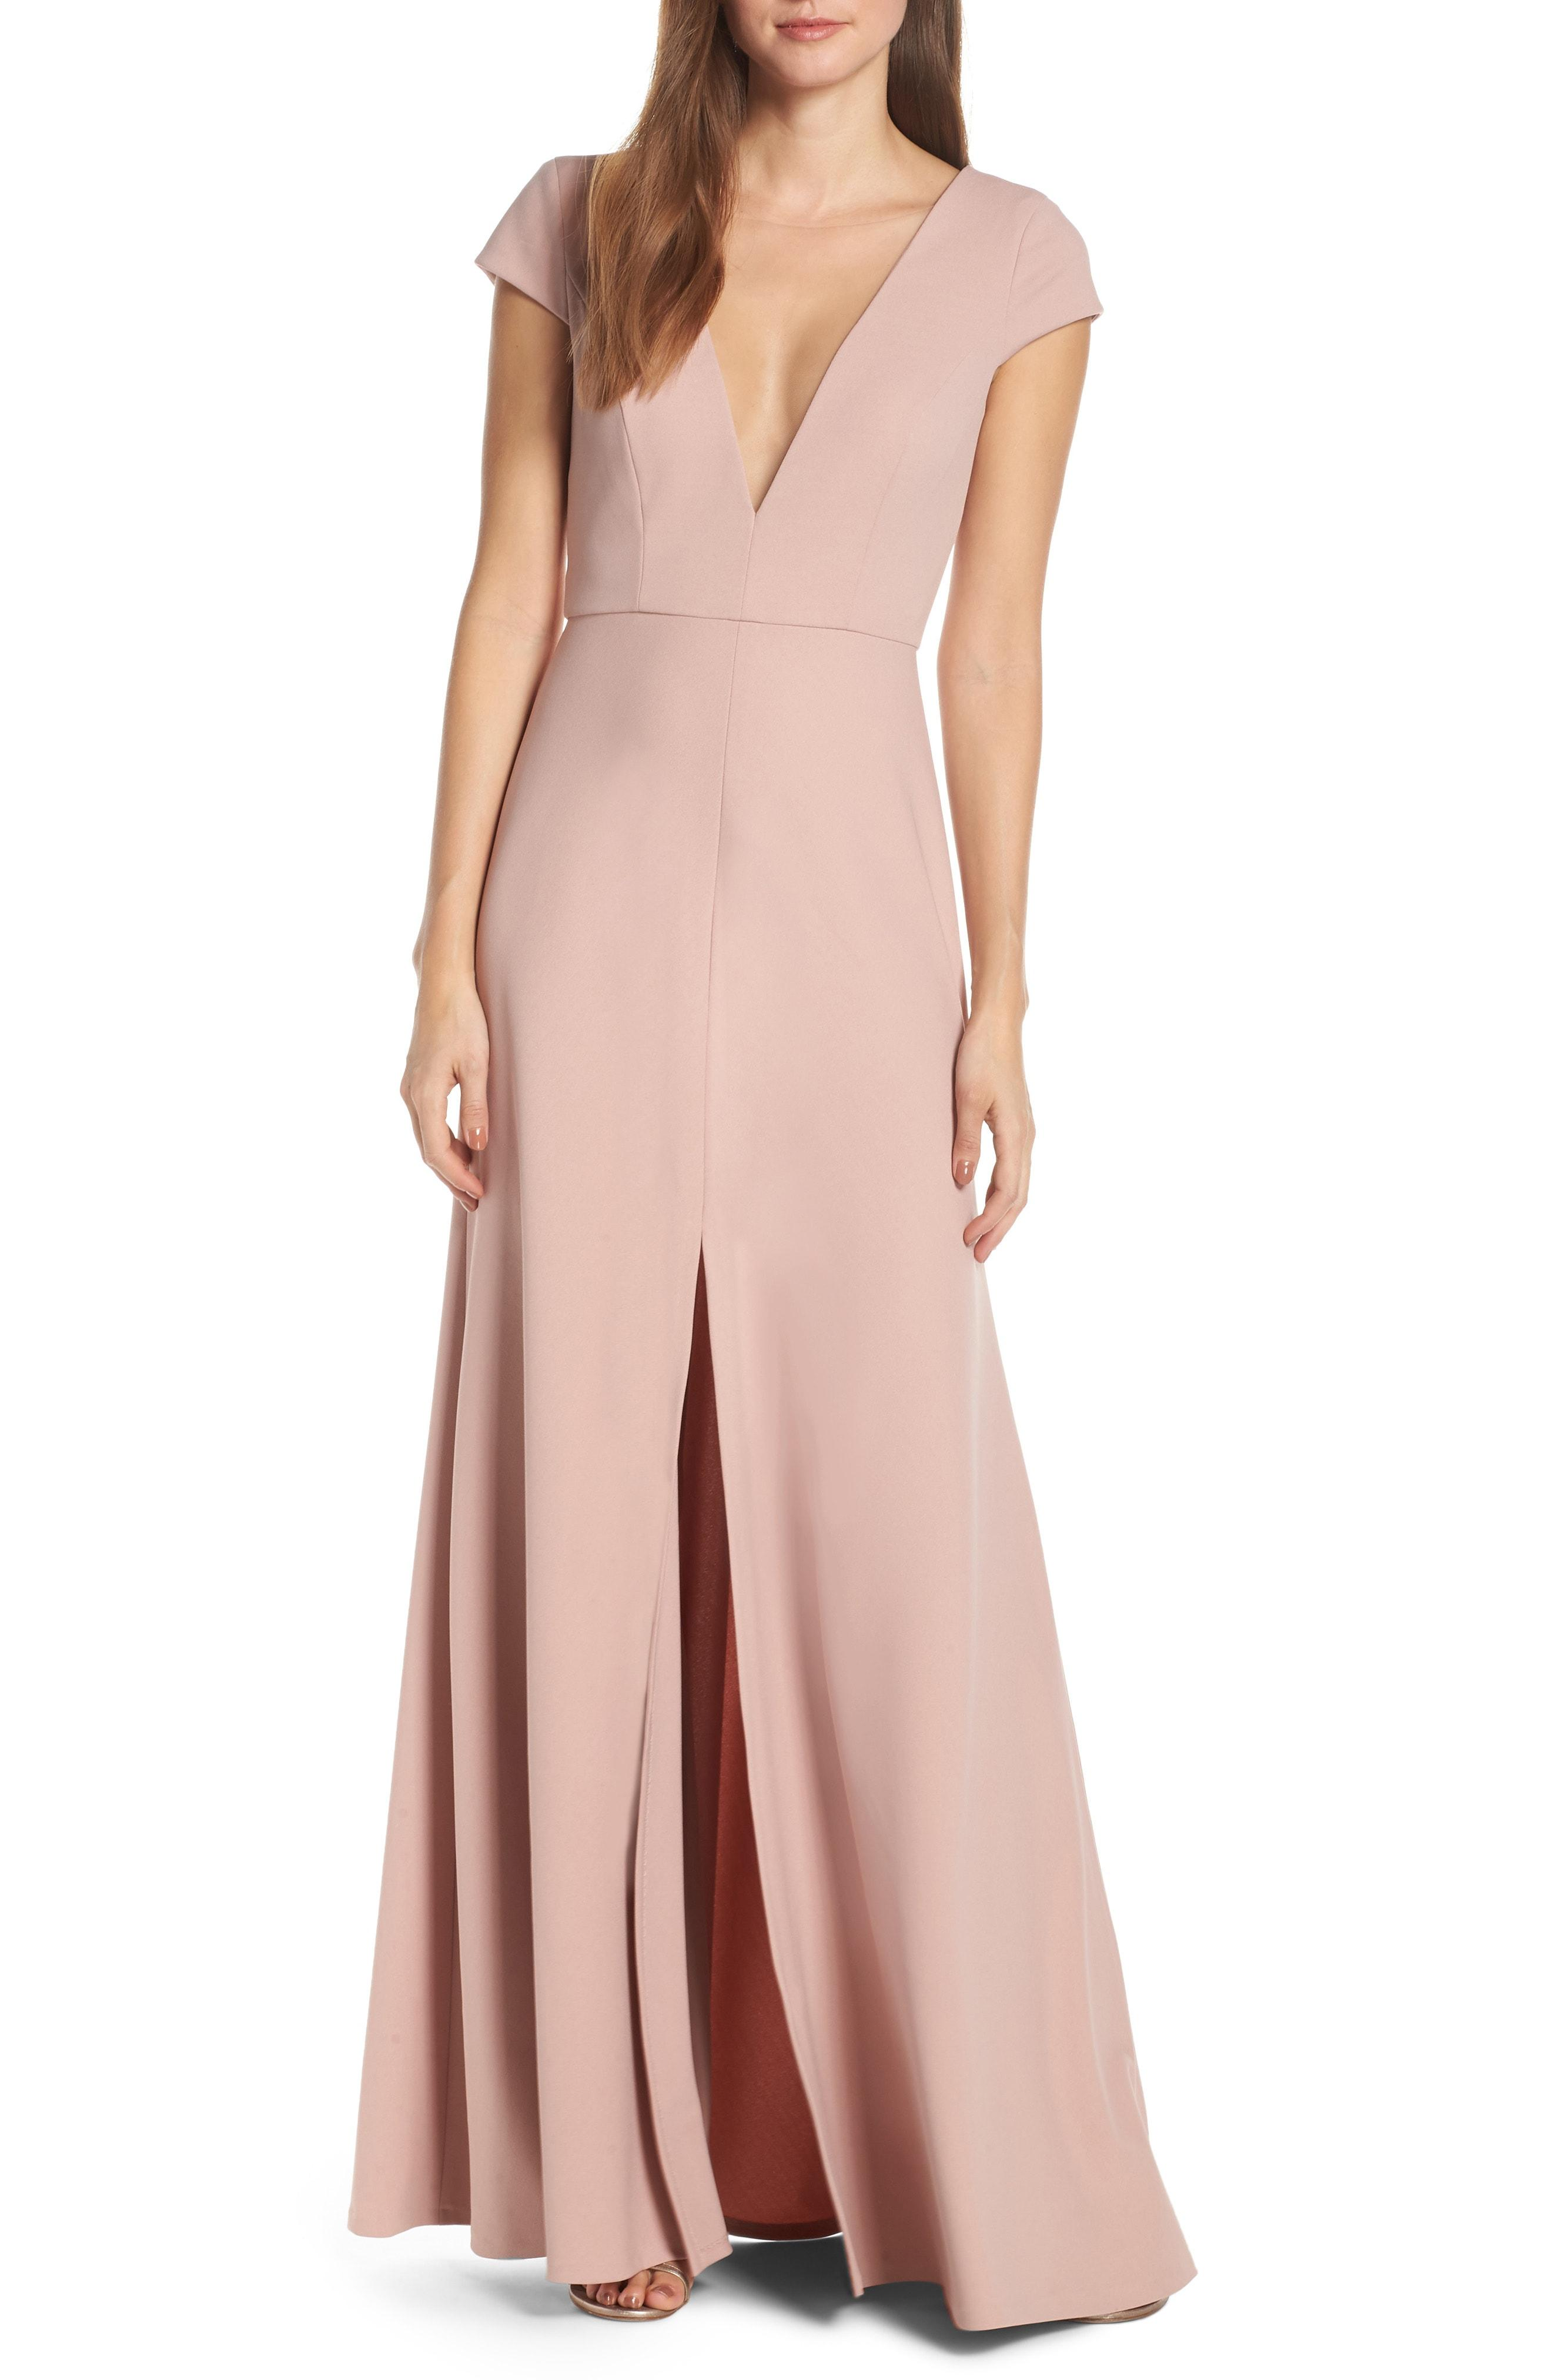 c13365adec Lyst - Jenny Yoo Cara Deep V-neck Evening Dress in Pink